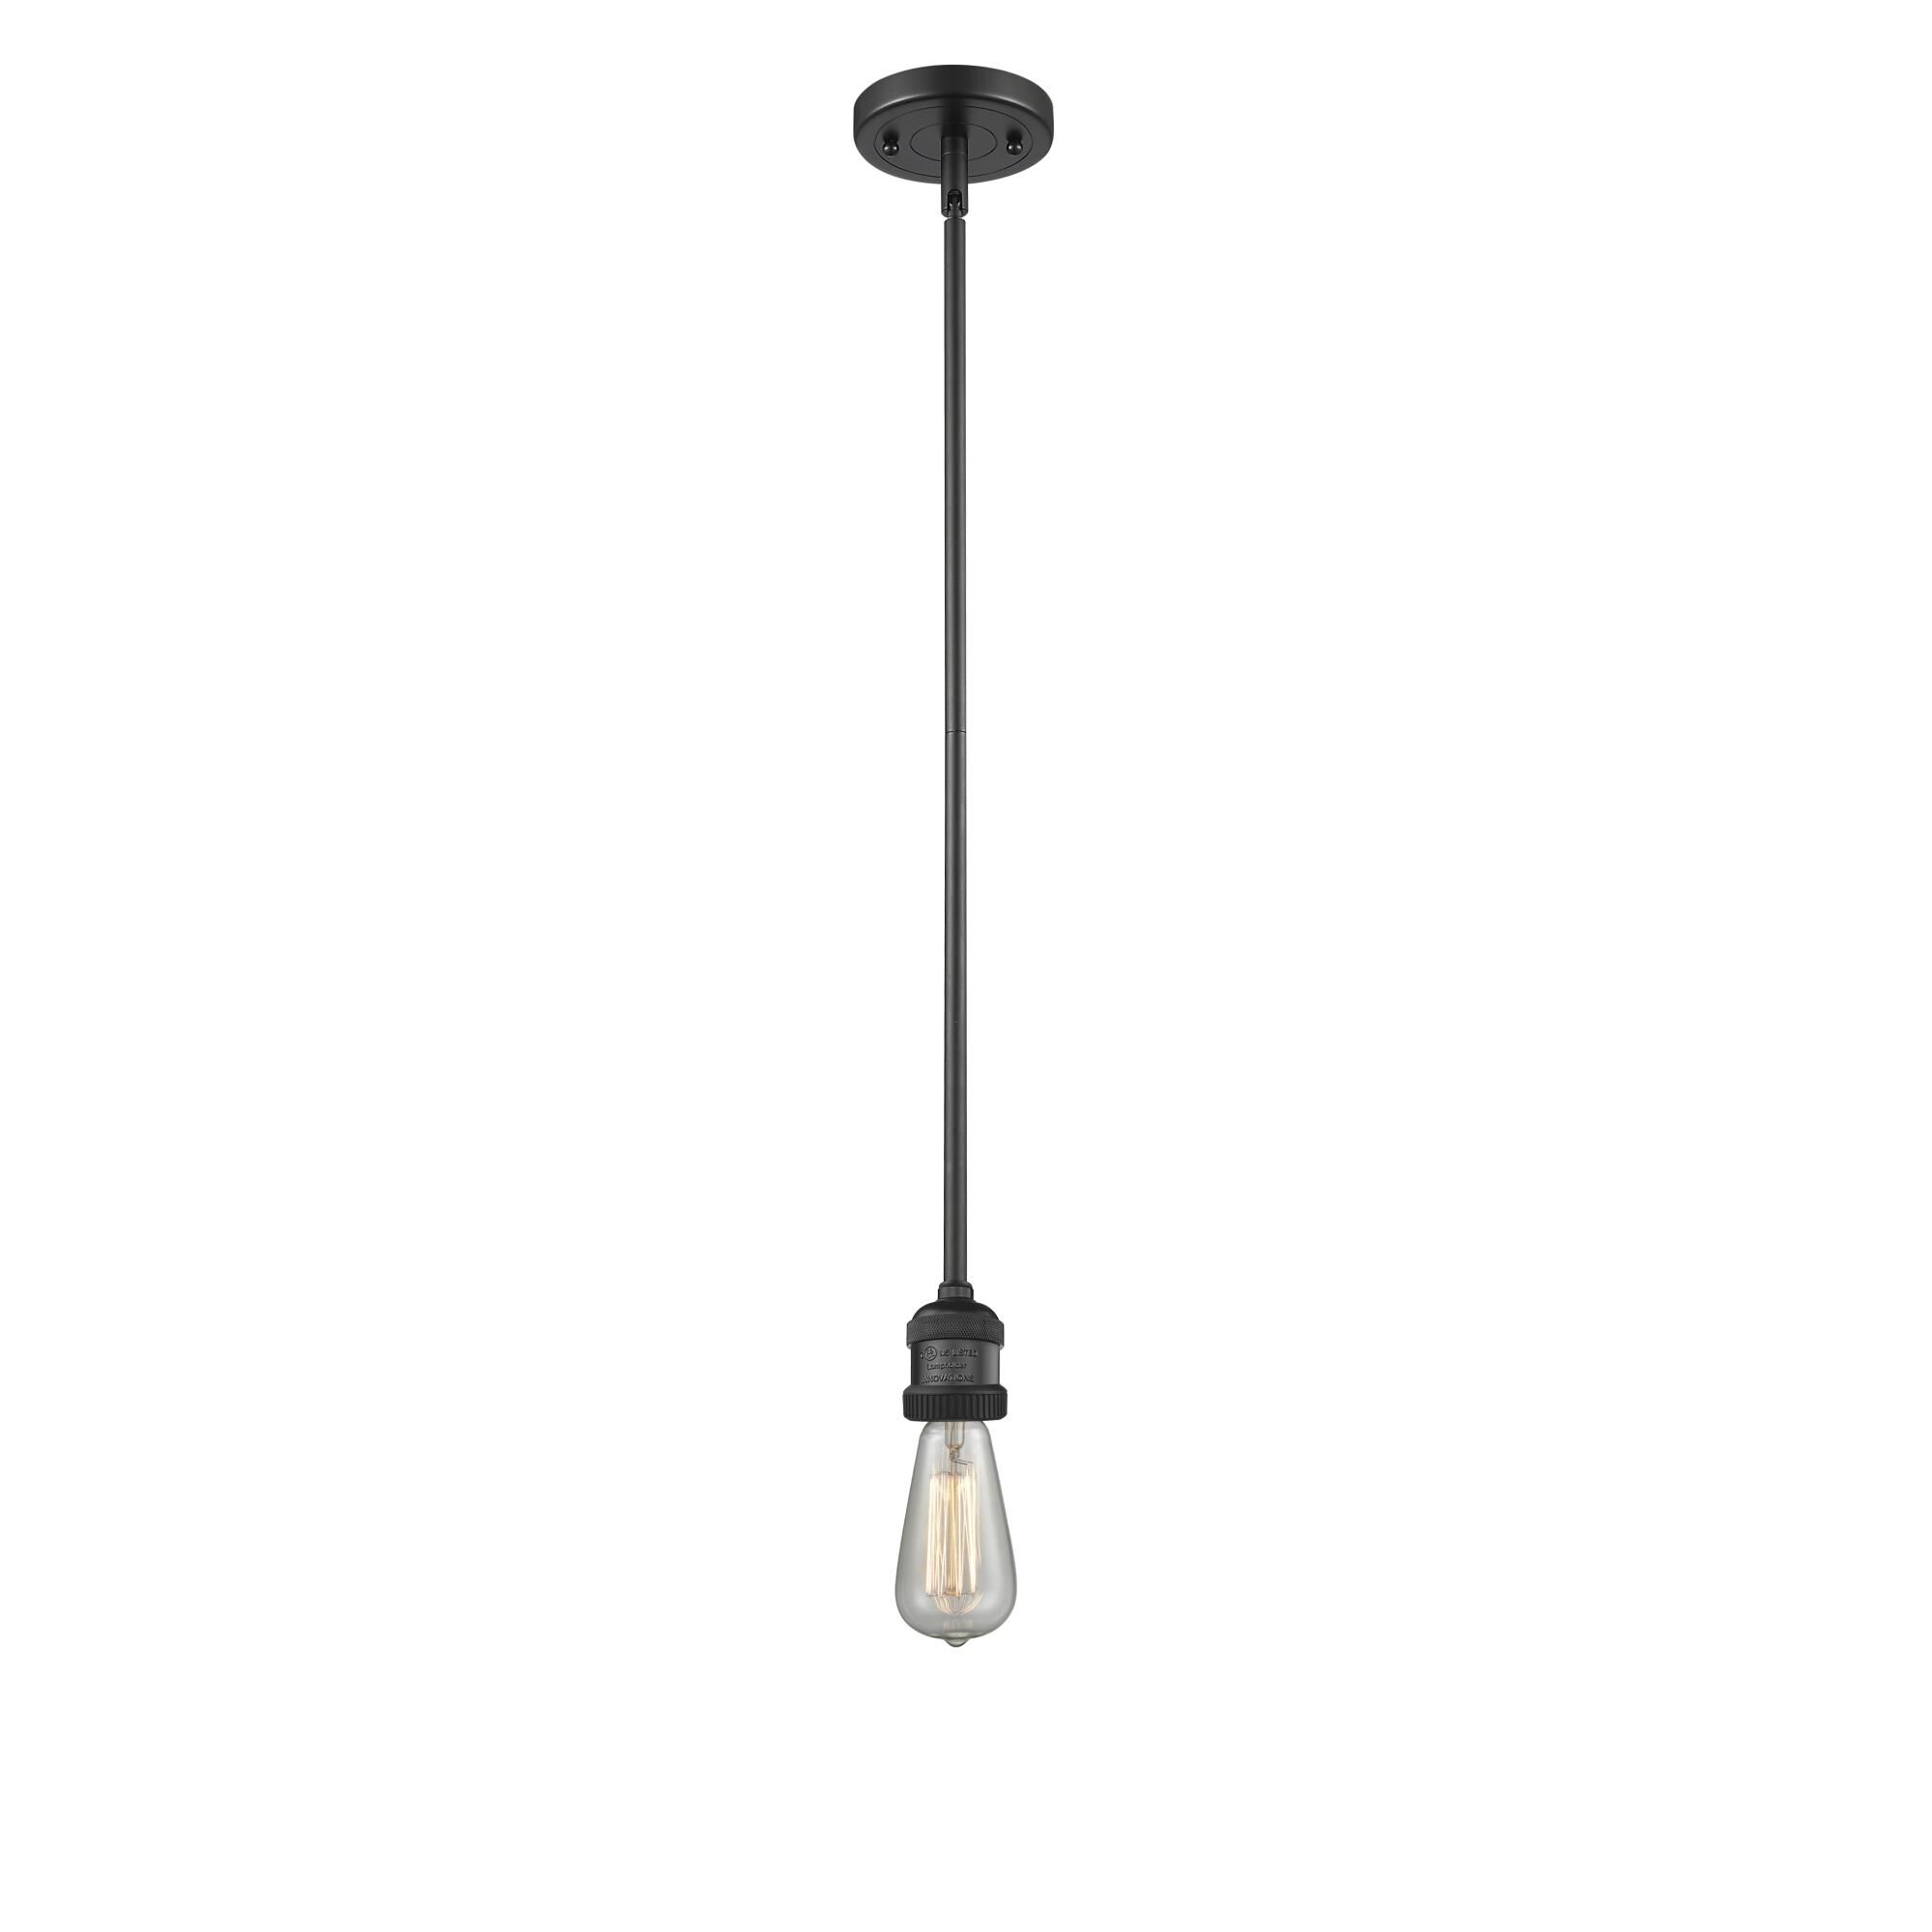 Innovations Lighting Bruno Marashlian Bare Bulb 2 Inch LED Mini Pendant Bare Bulb - 200NH-S-BK-LED - Restoration-Vintage Mini Pendant